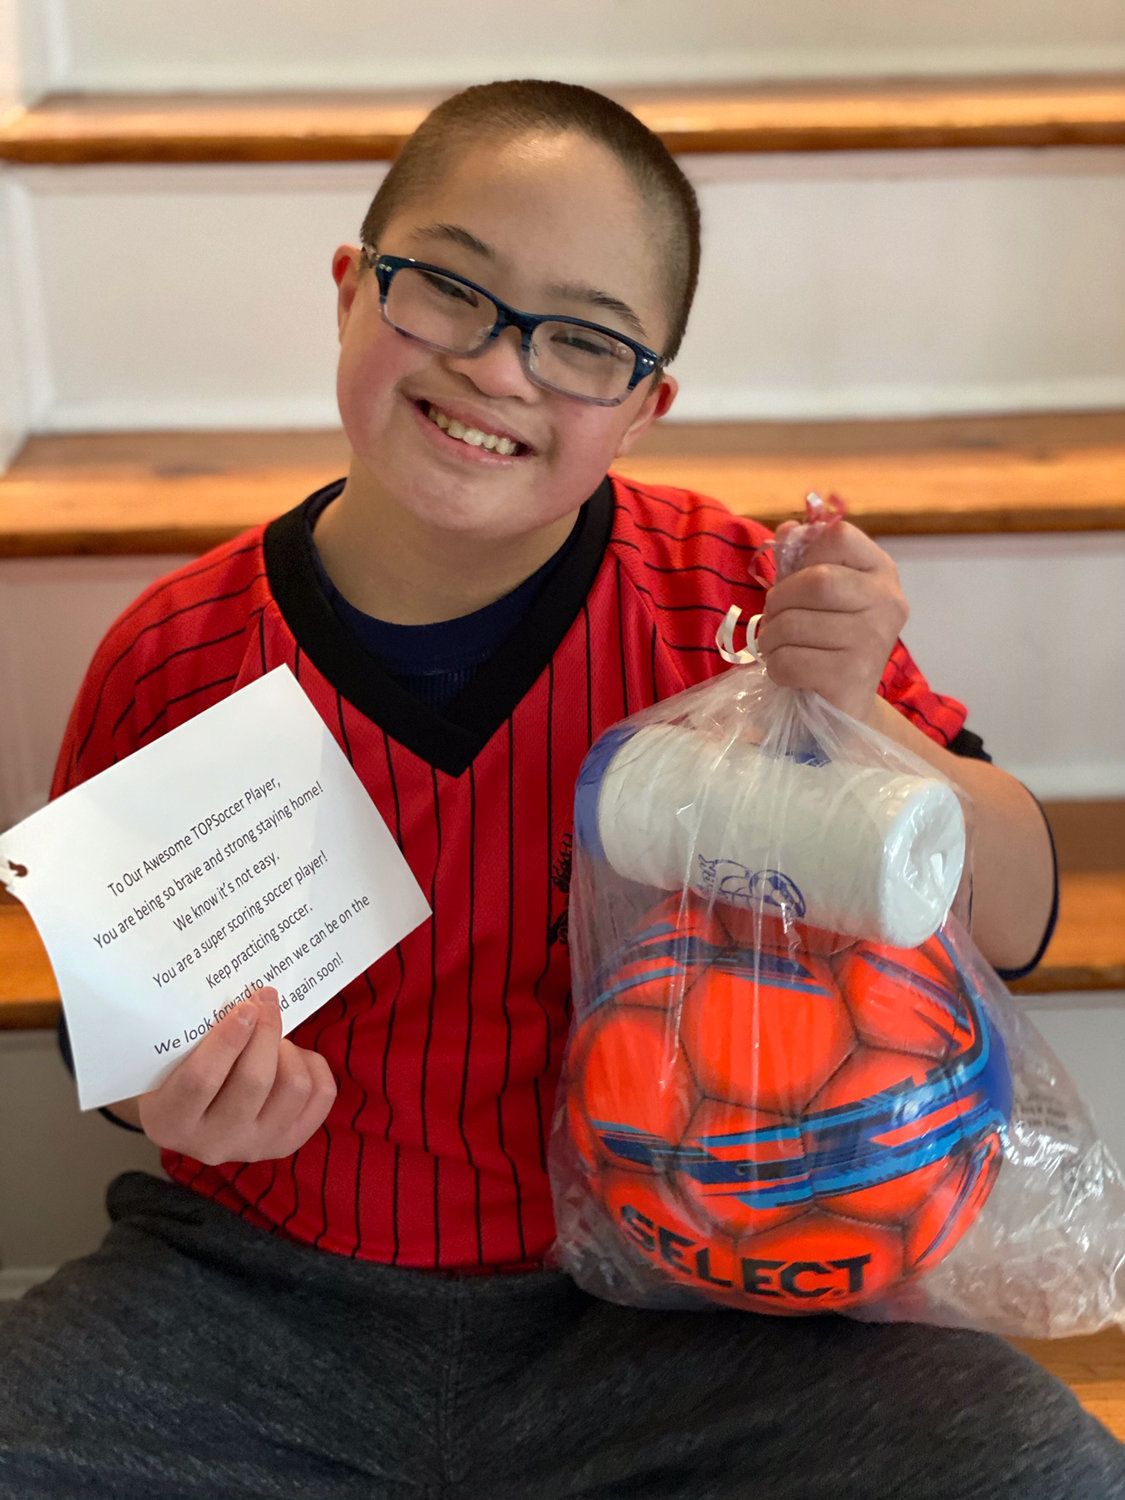 Chiefs Soccer Club player Rafael Borja was happy to receive his gifts.